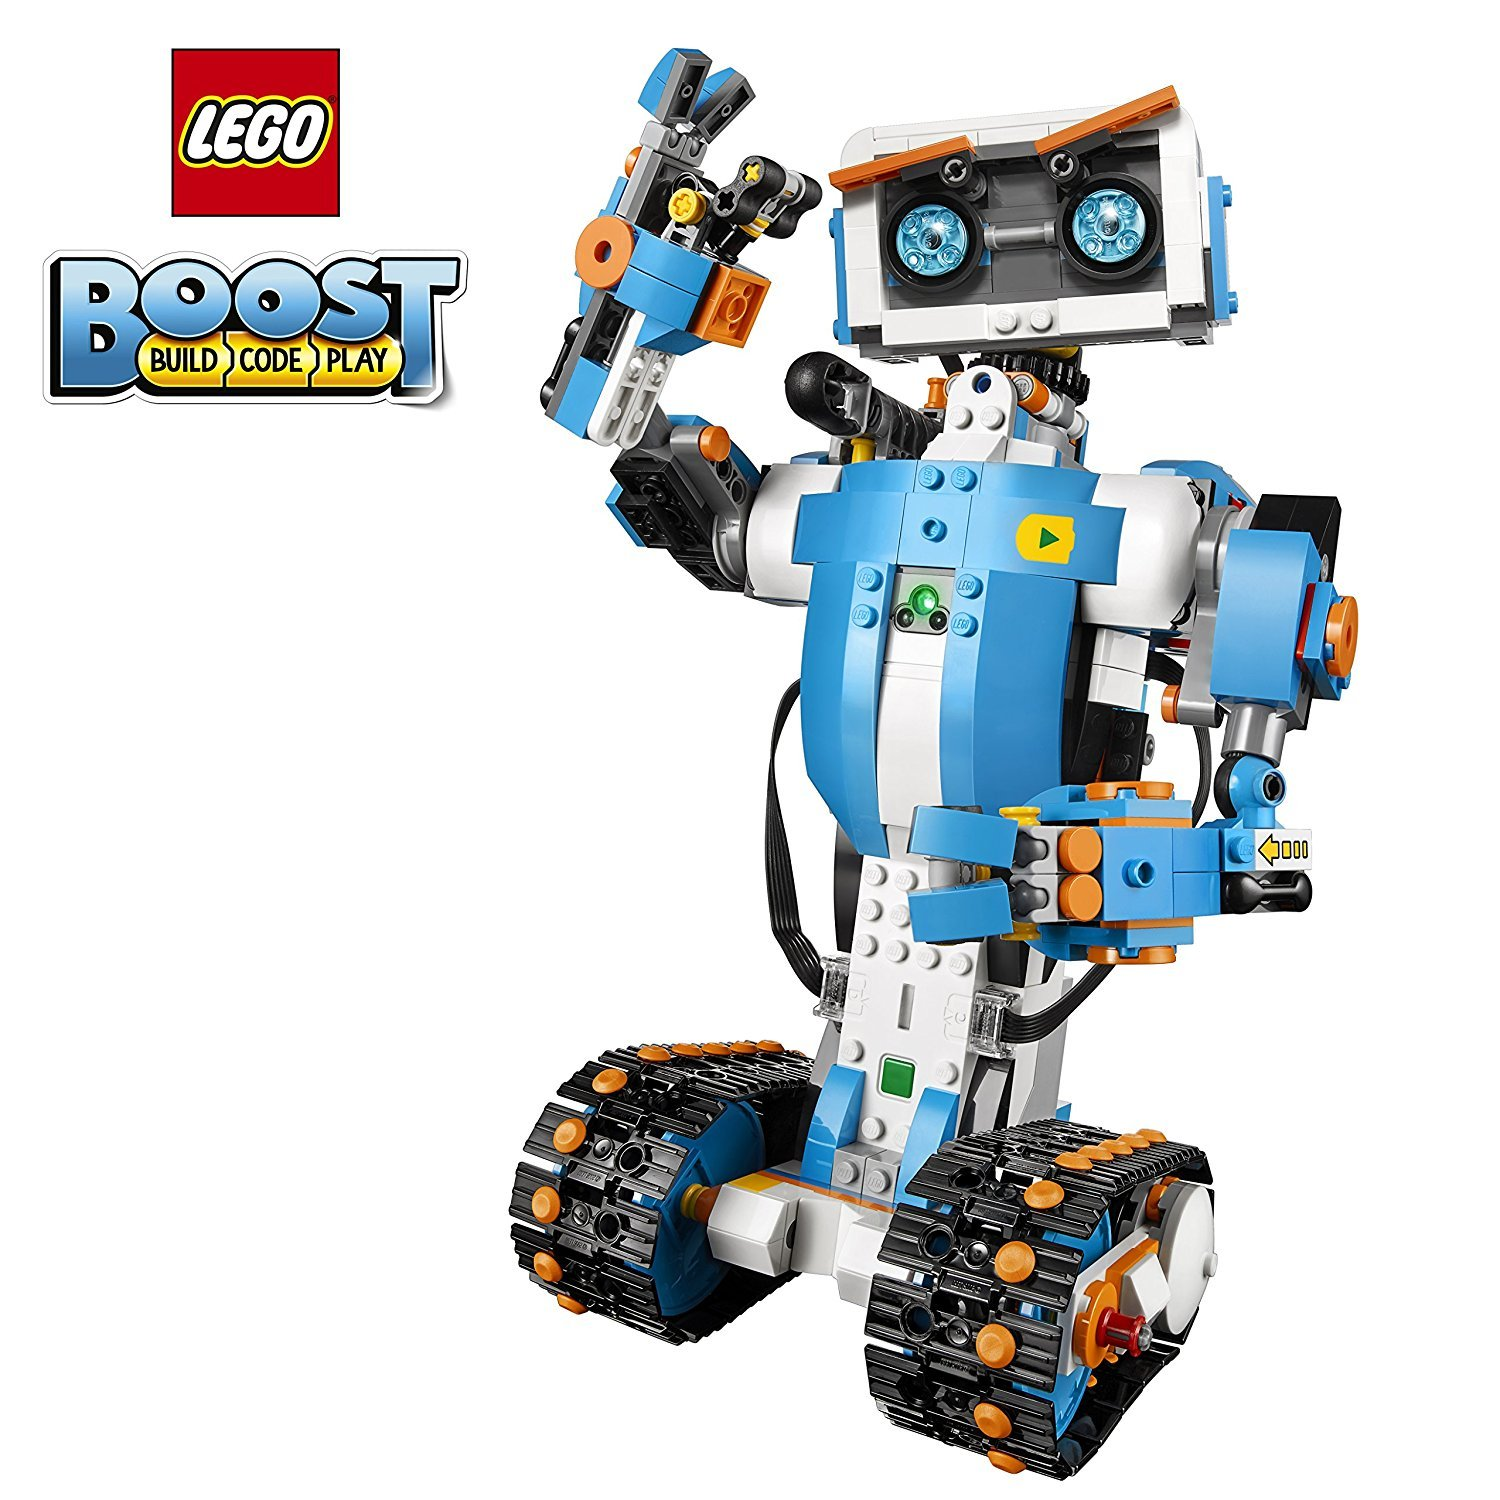 LEGO Boost Creative Toolbox 17101 Building and Coding Kit